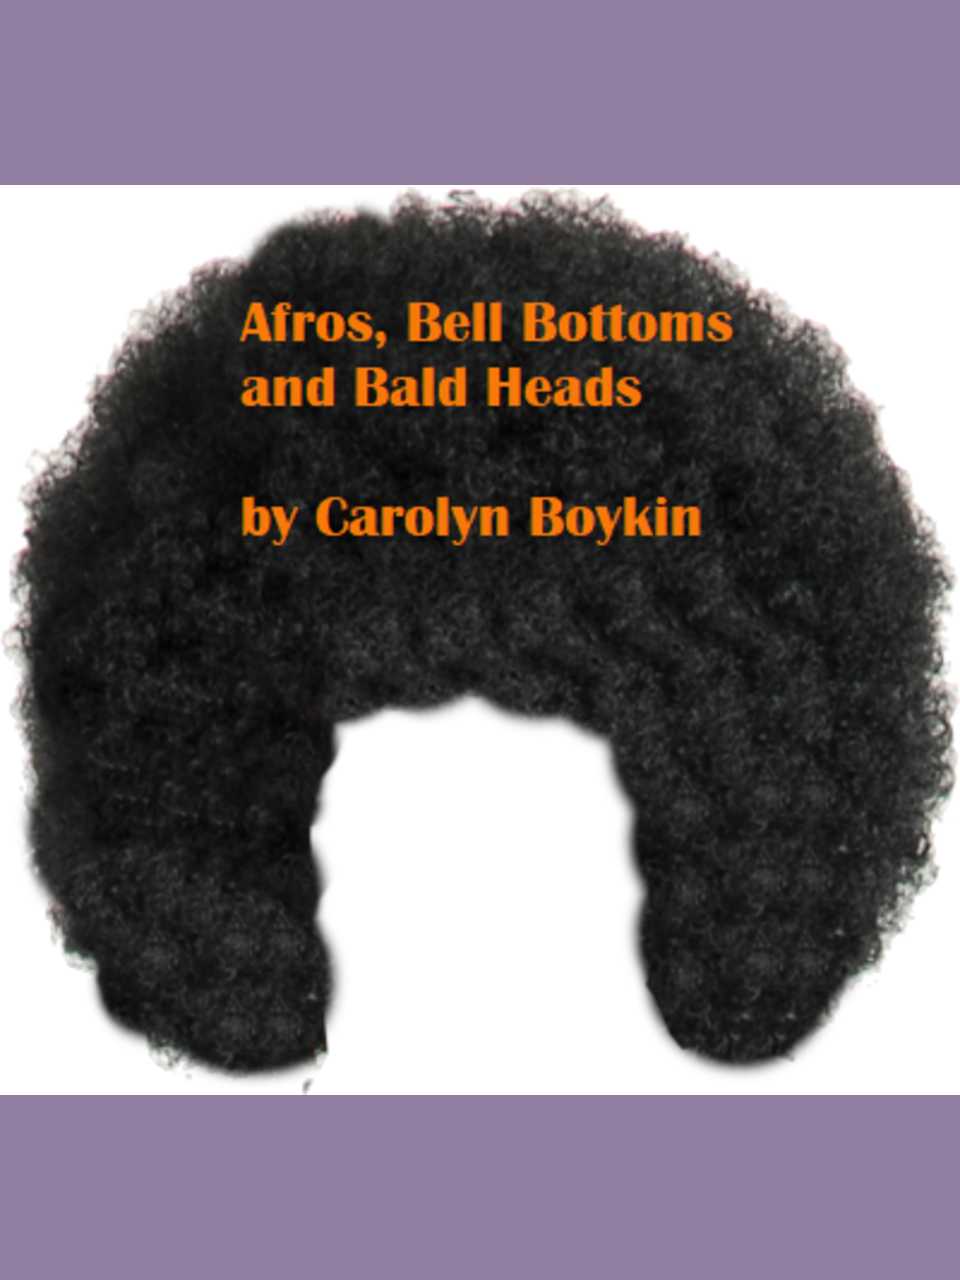 Afros, Bellbottoms and Bald Heads